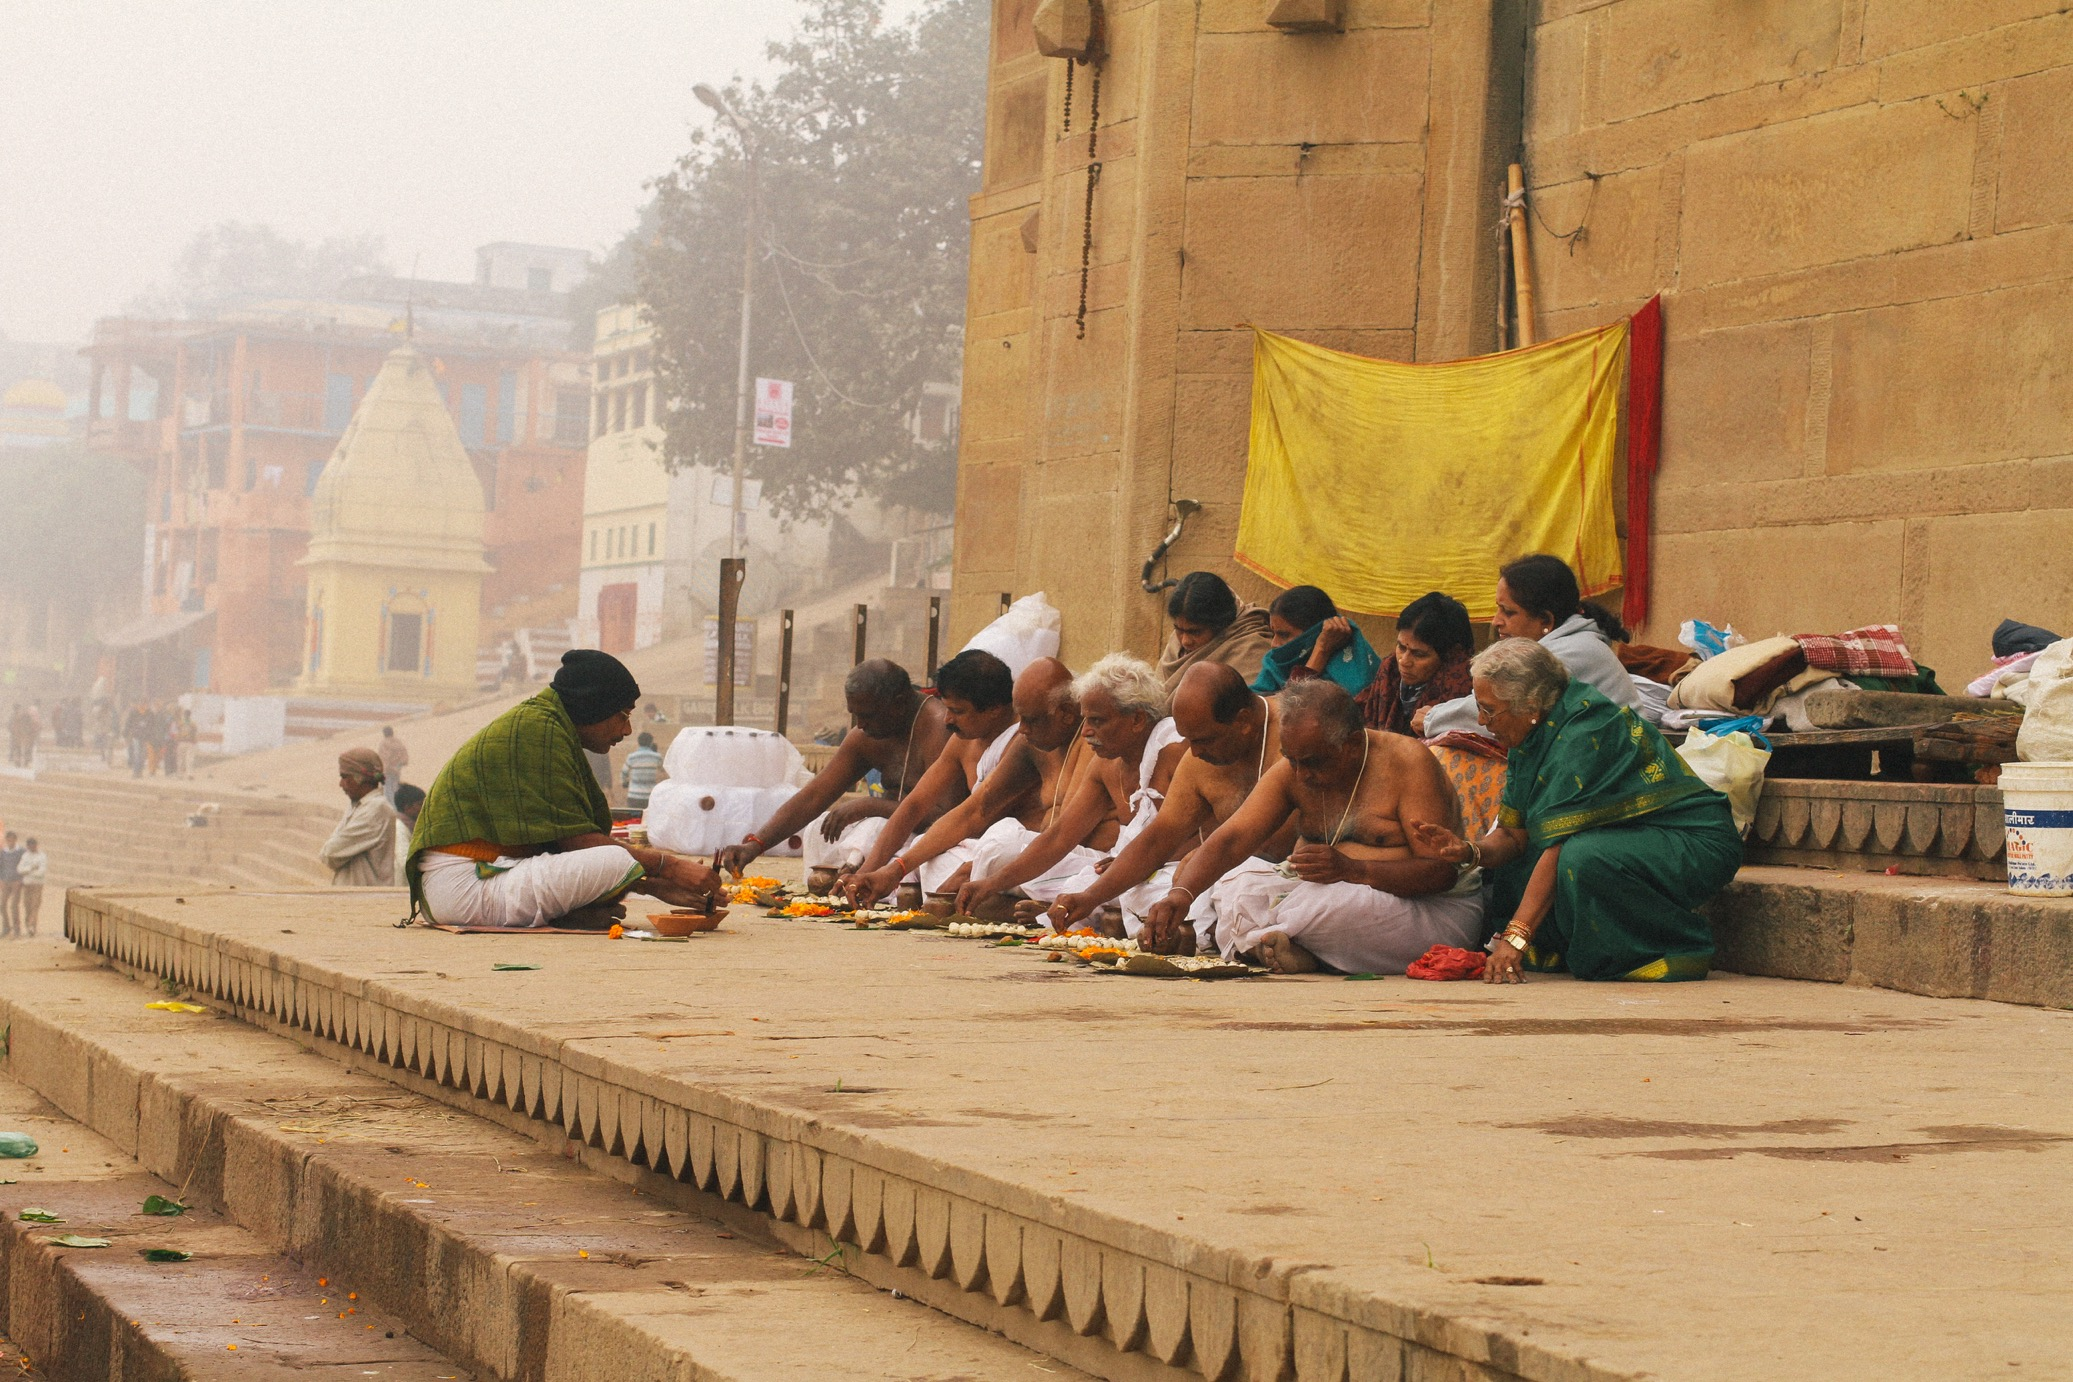 Varanasi: Wash in the most polluted river of the holy city